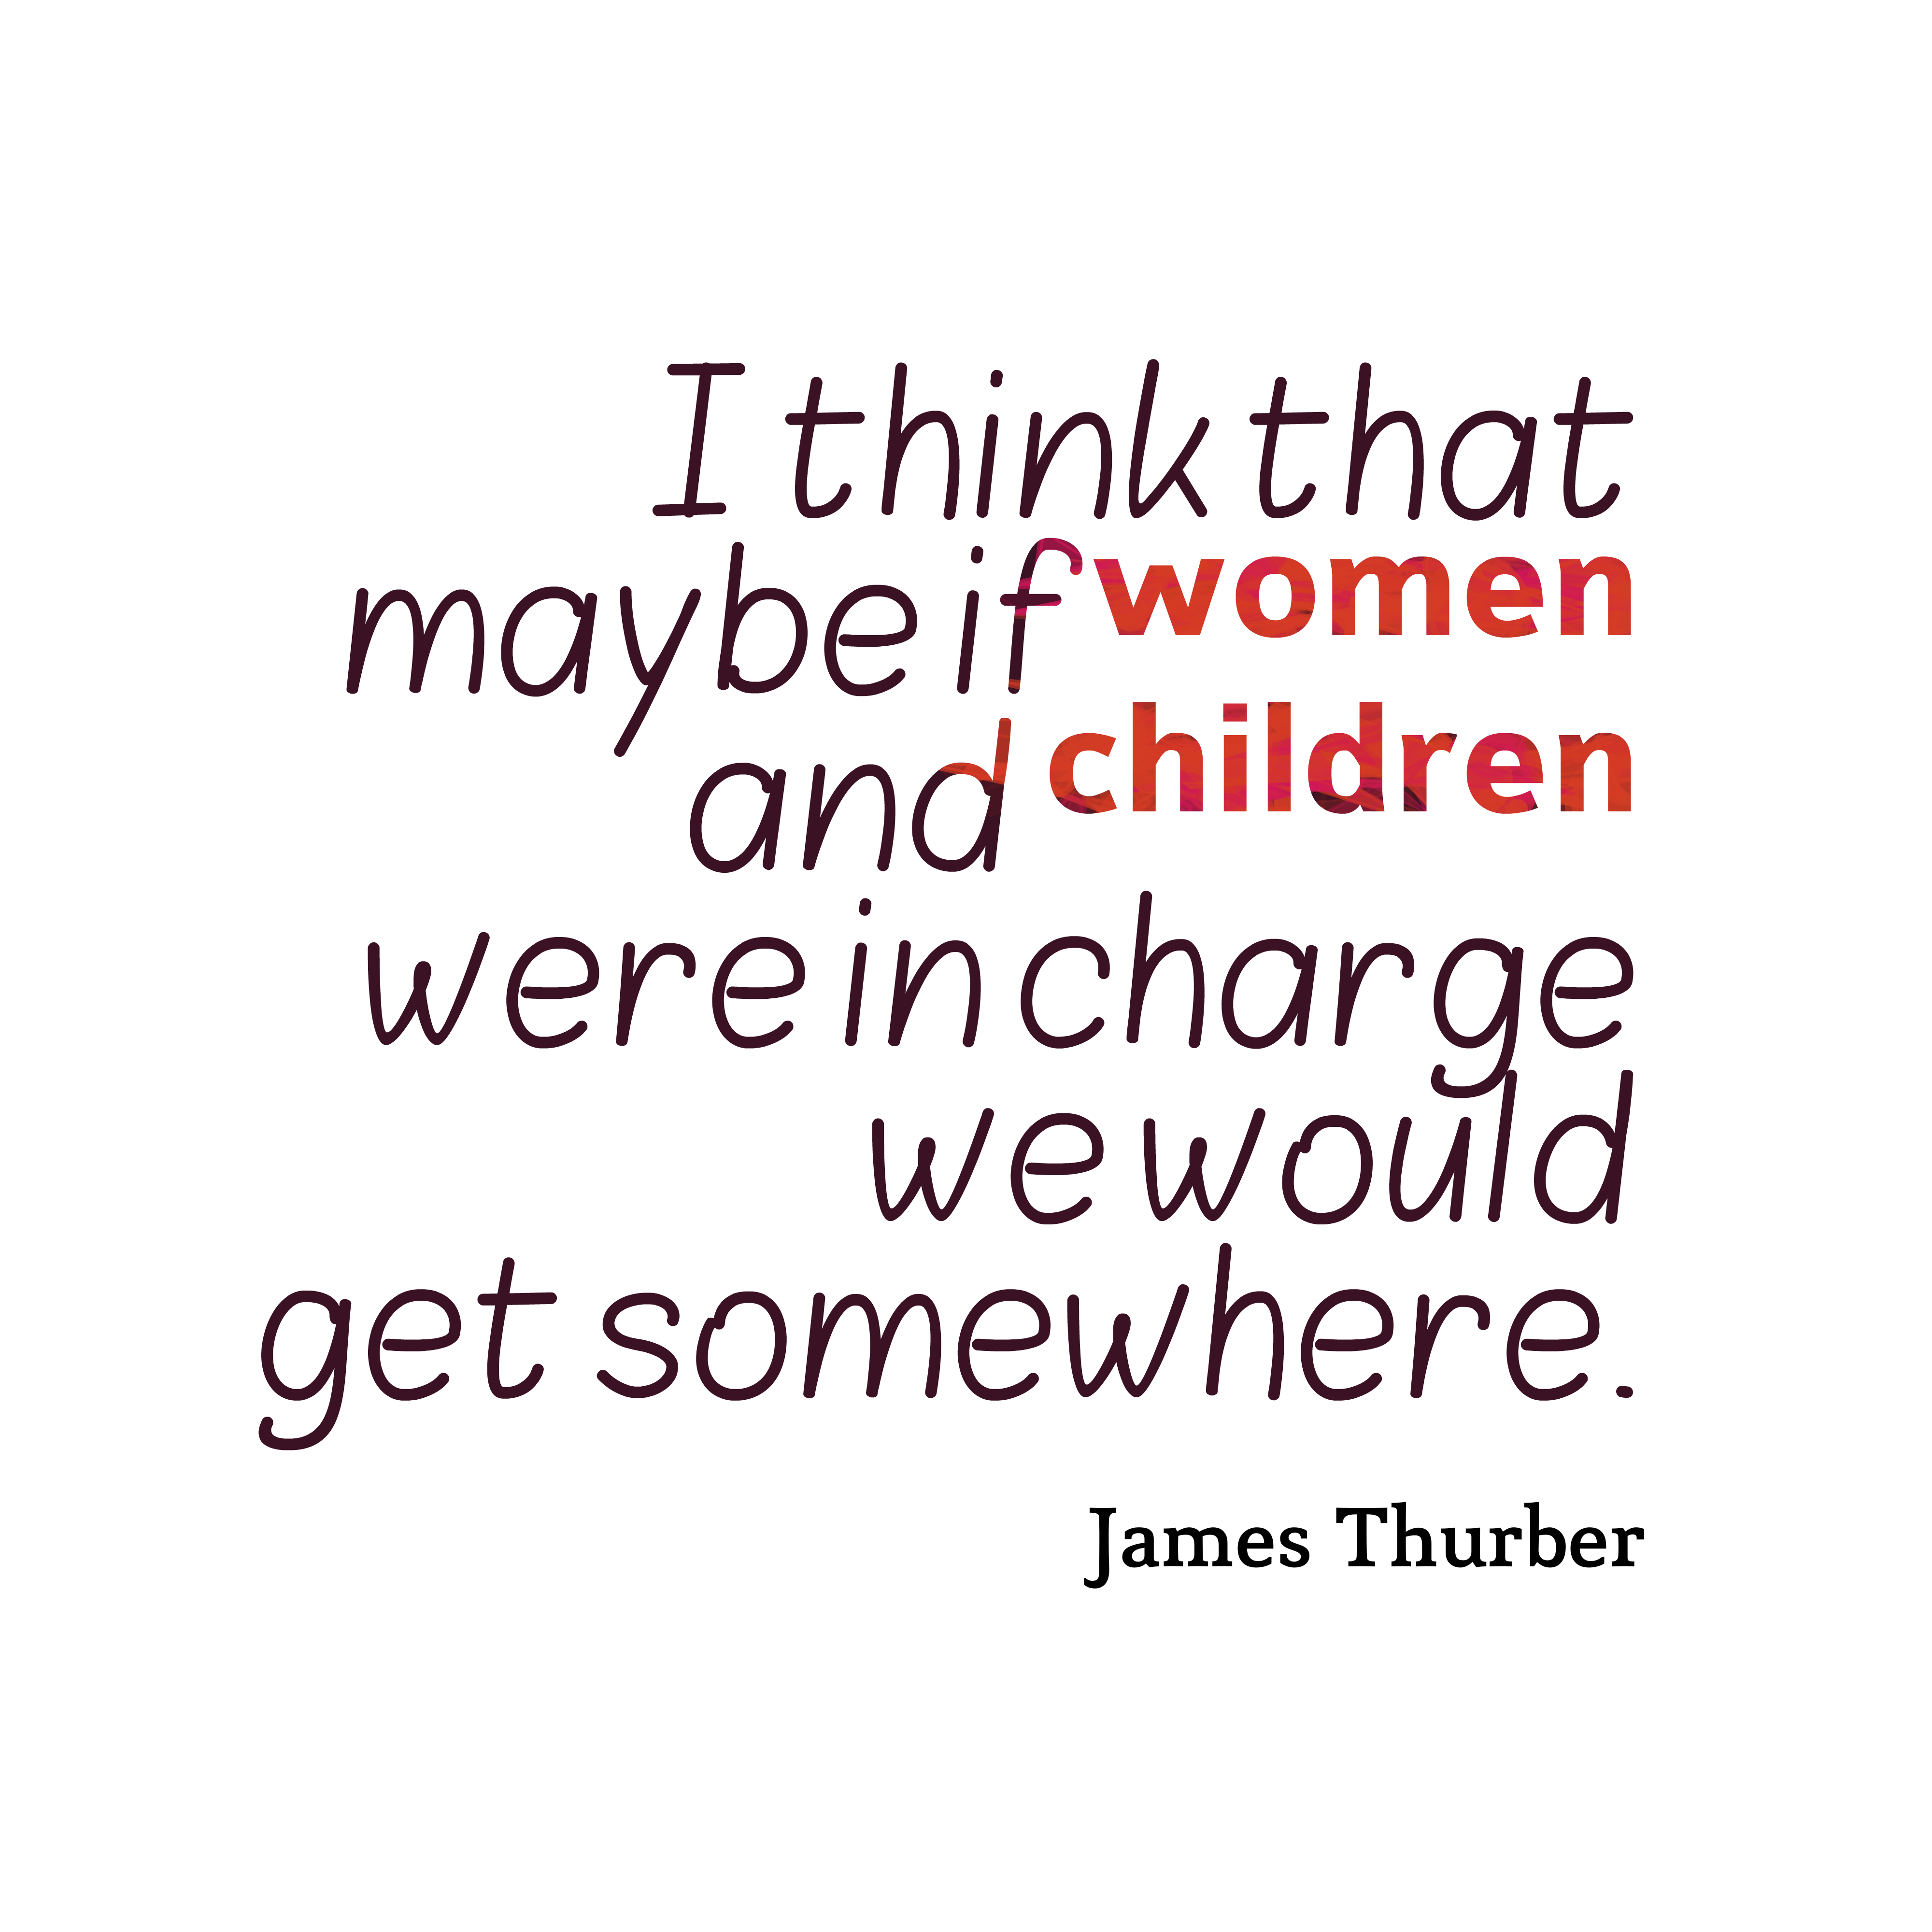 Quotes image of I think that maybe if women and children were in charge we would get somewhere.